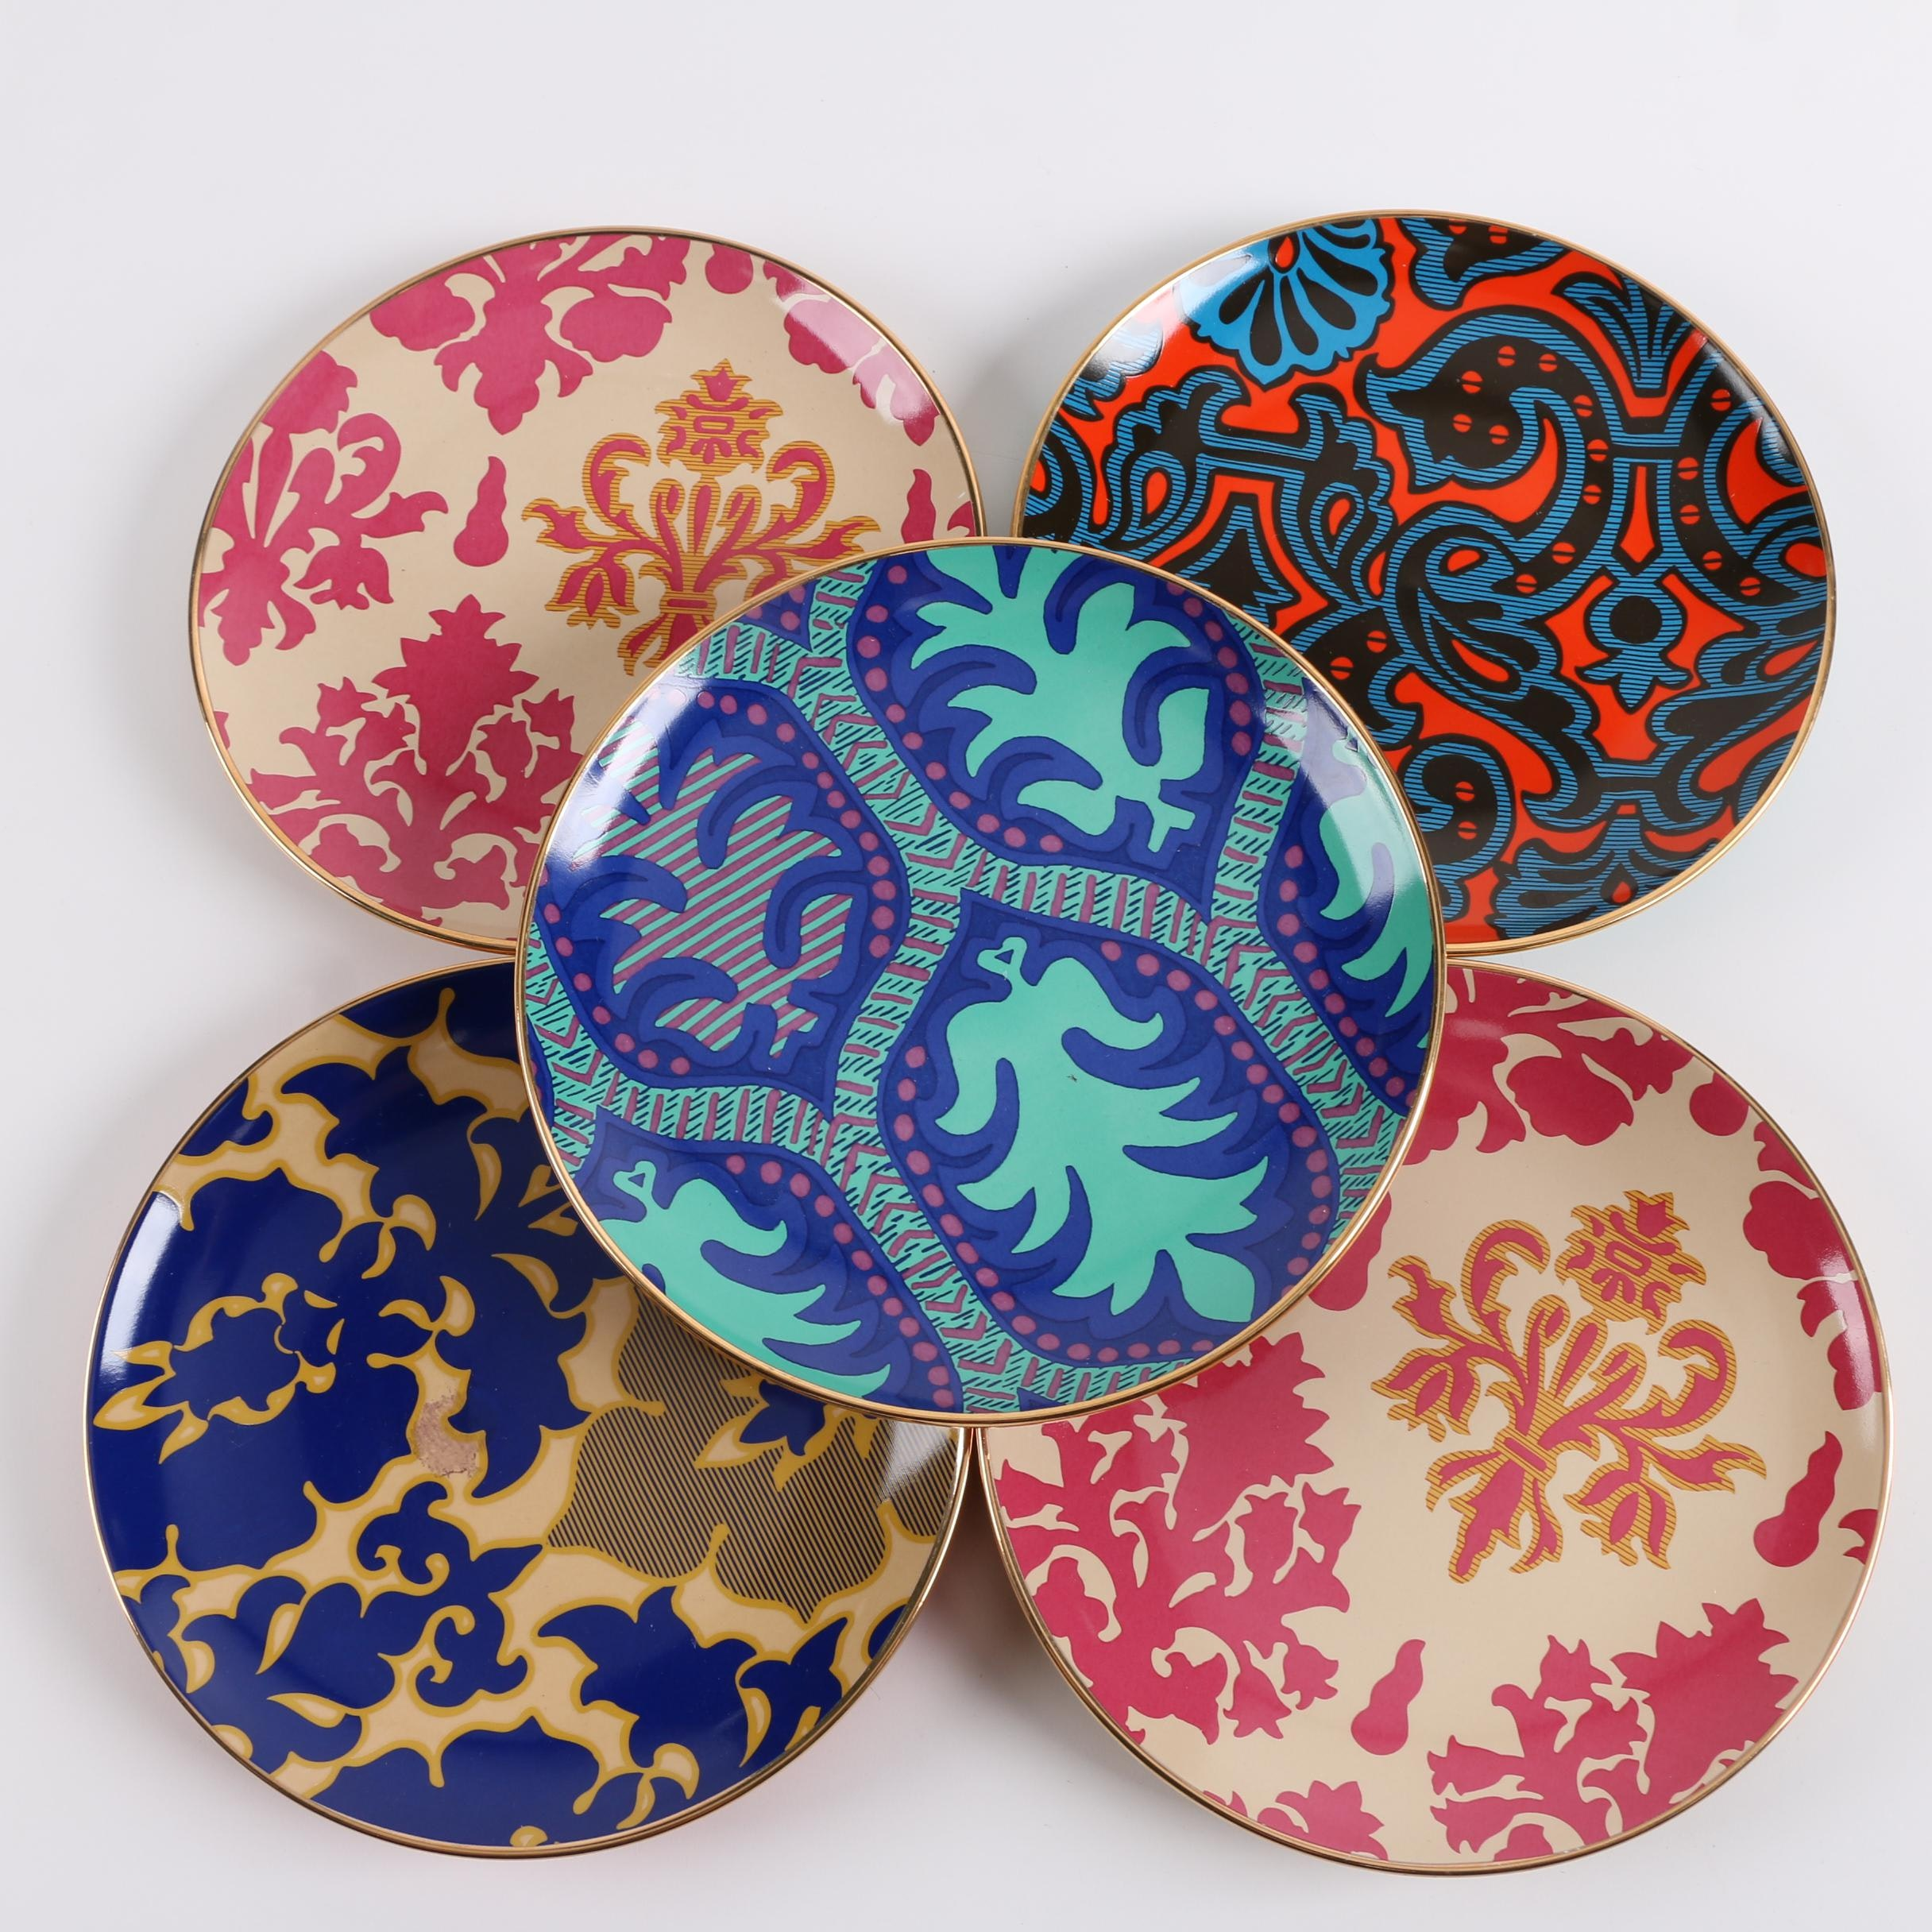 Tracy Reese Colorful Ceramic Dessert Plates